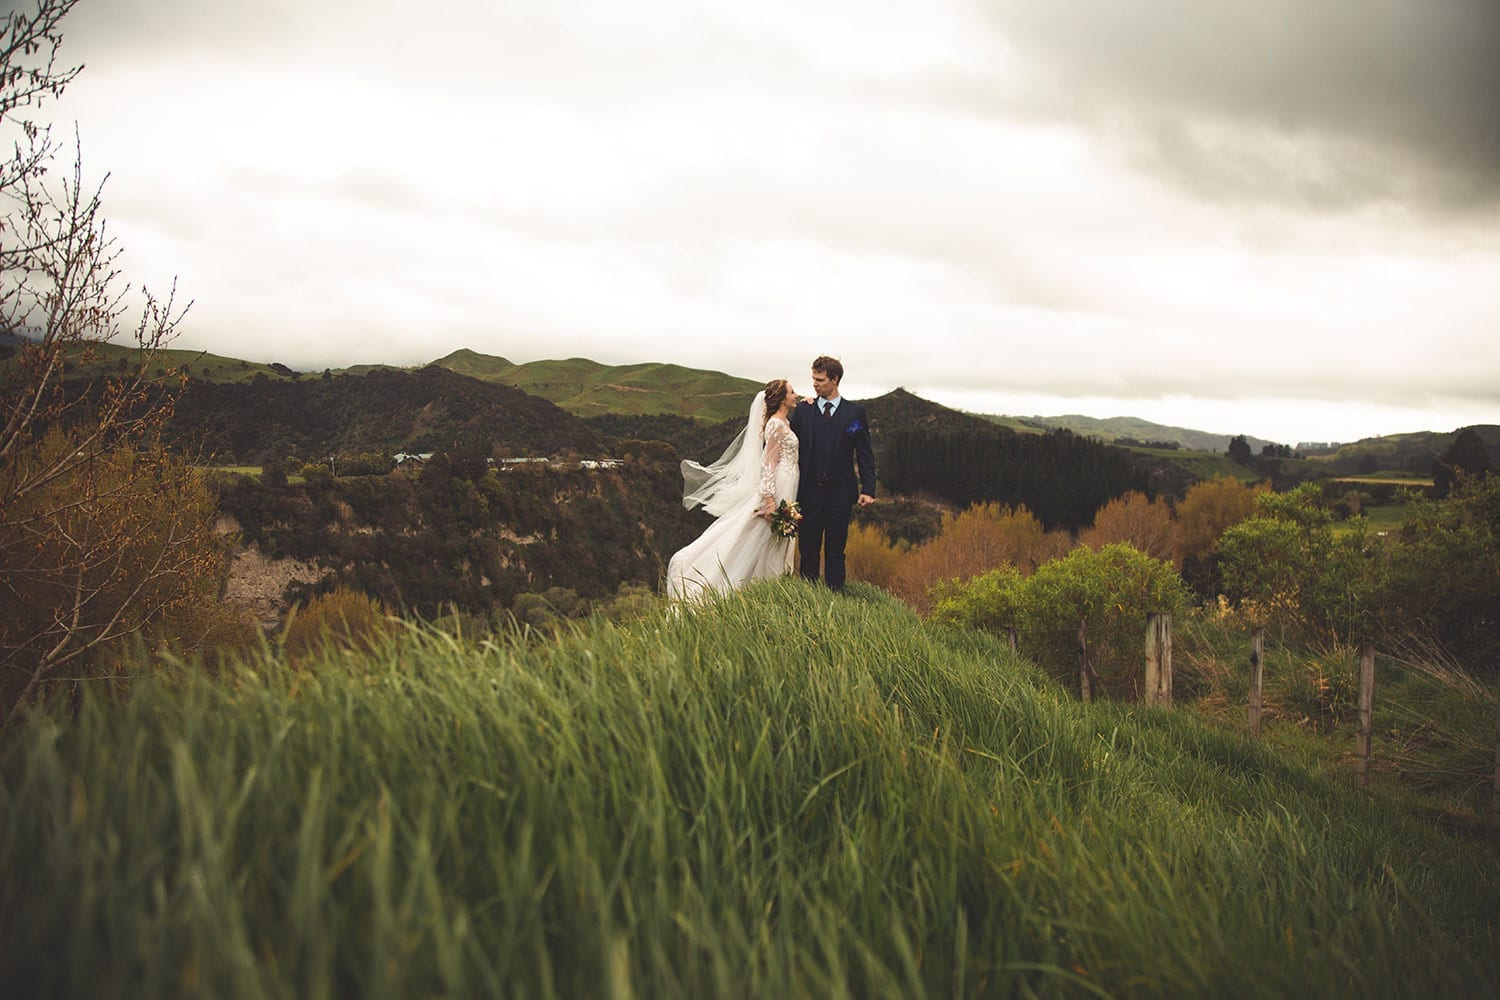 Vinka Design Features Real Weddings - bride in custom made gown, a combination of Isabelle and Ivy from our Heart of Havana collection. Bride and groom in a field with panormaic views